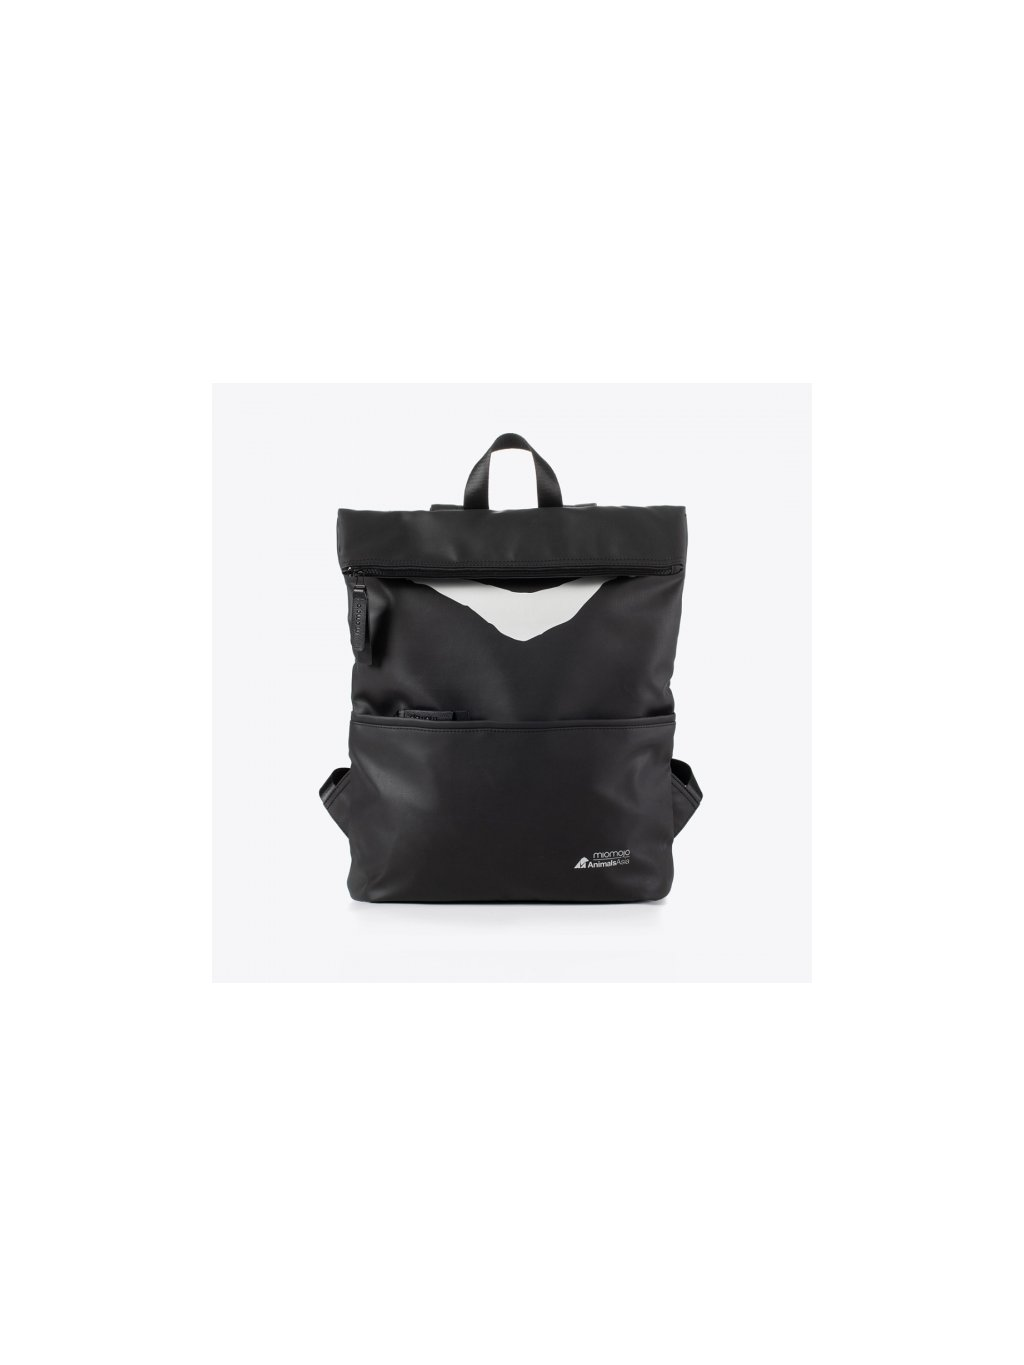 backpack vegan animal asia cruelty free black italian recycled